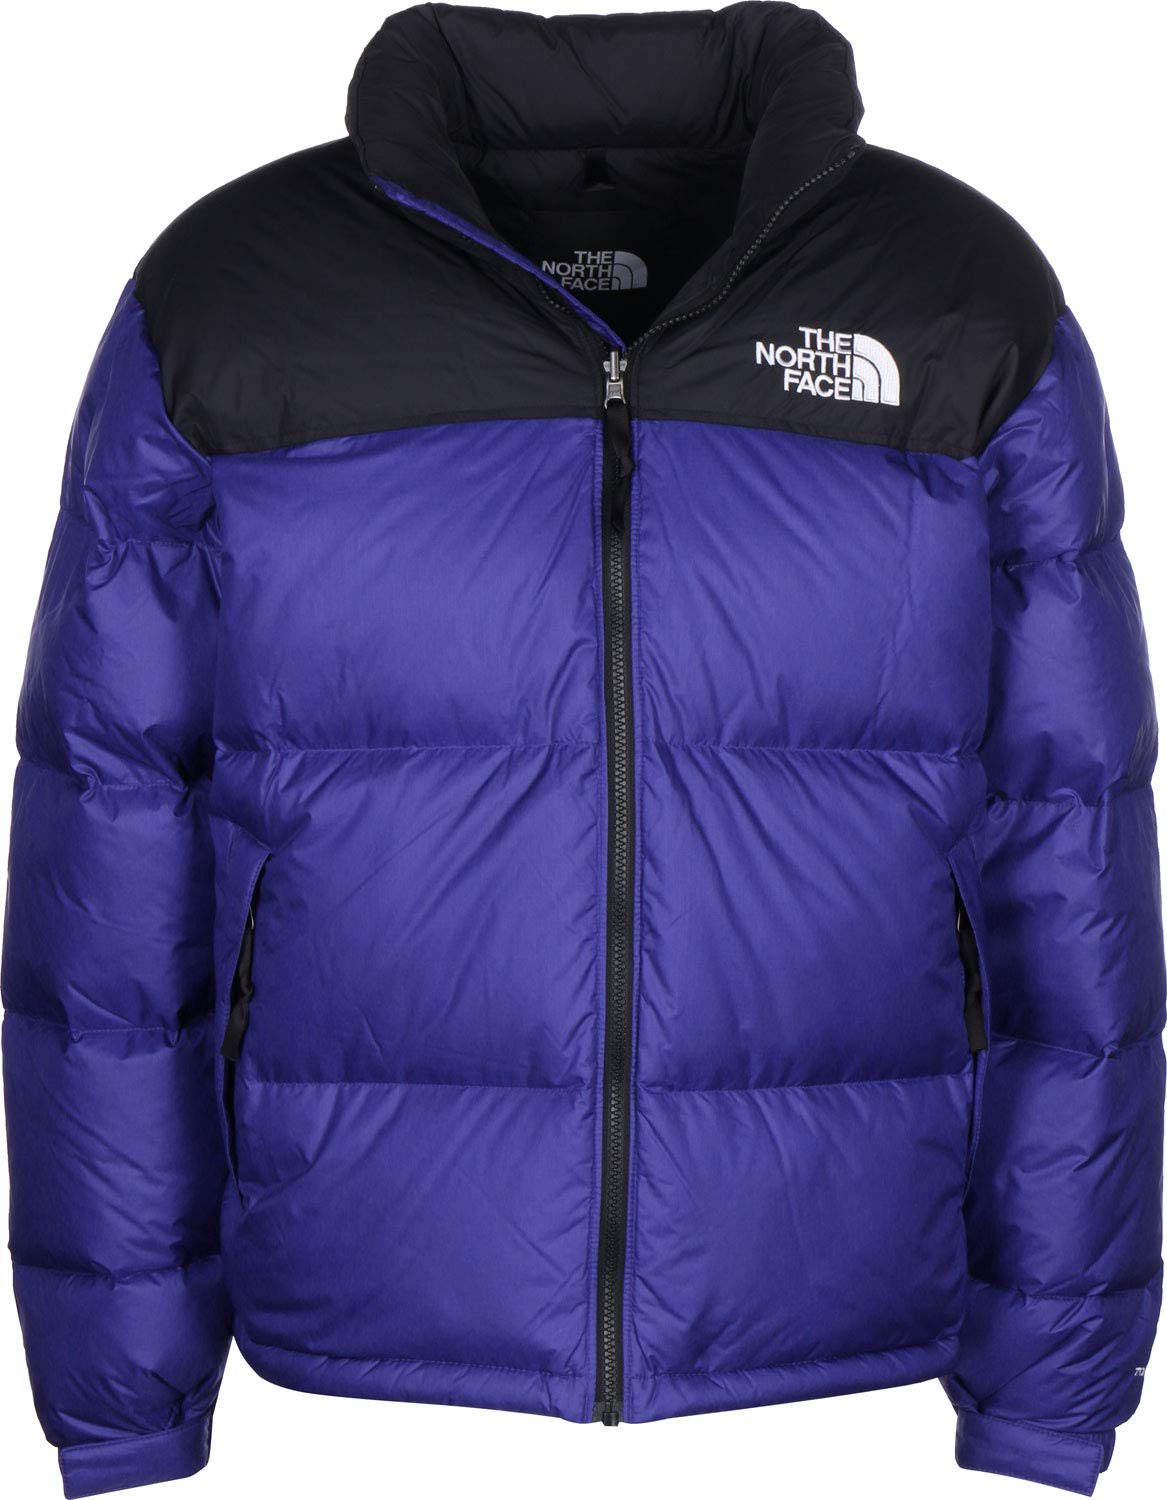 15b3d7f6d The North Face 1996 Retro Nuptse Jacket - Men's